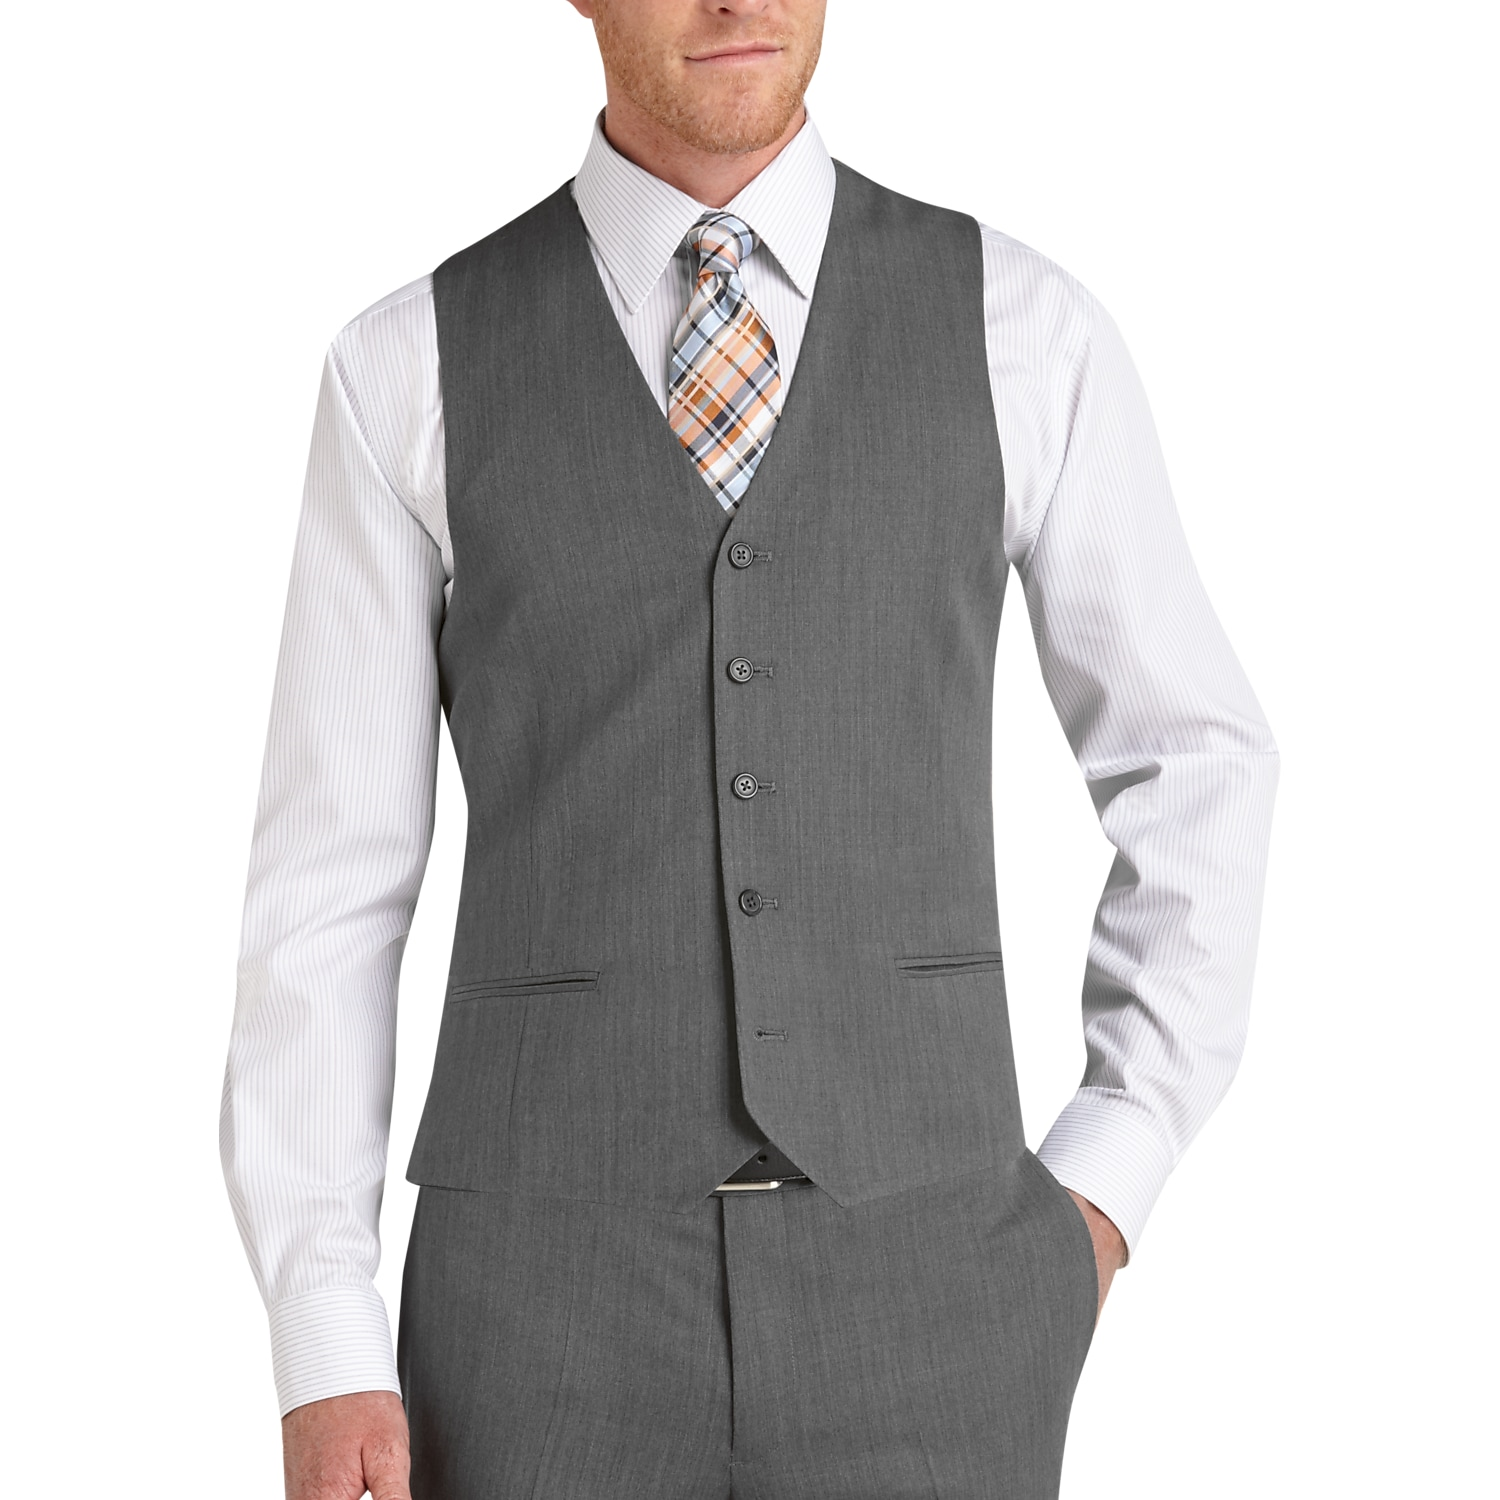 Egara Medium Gray Suit Separates Slim Fit Vest - Men's Suit ...